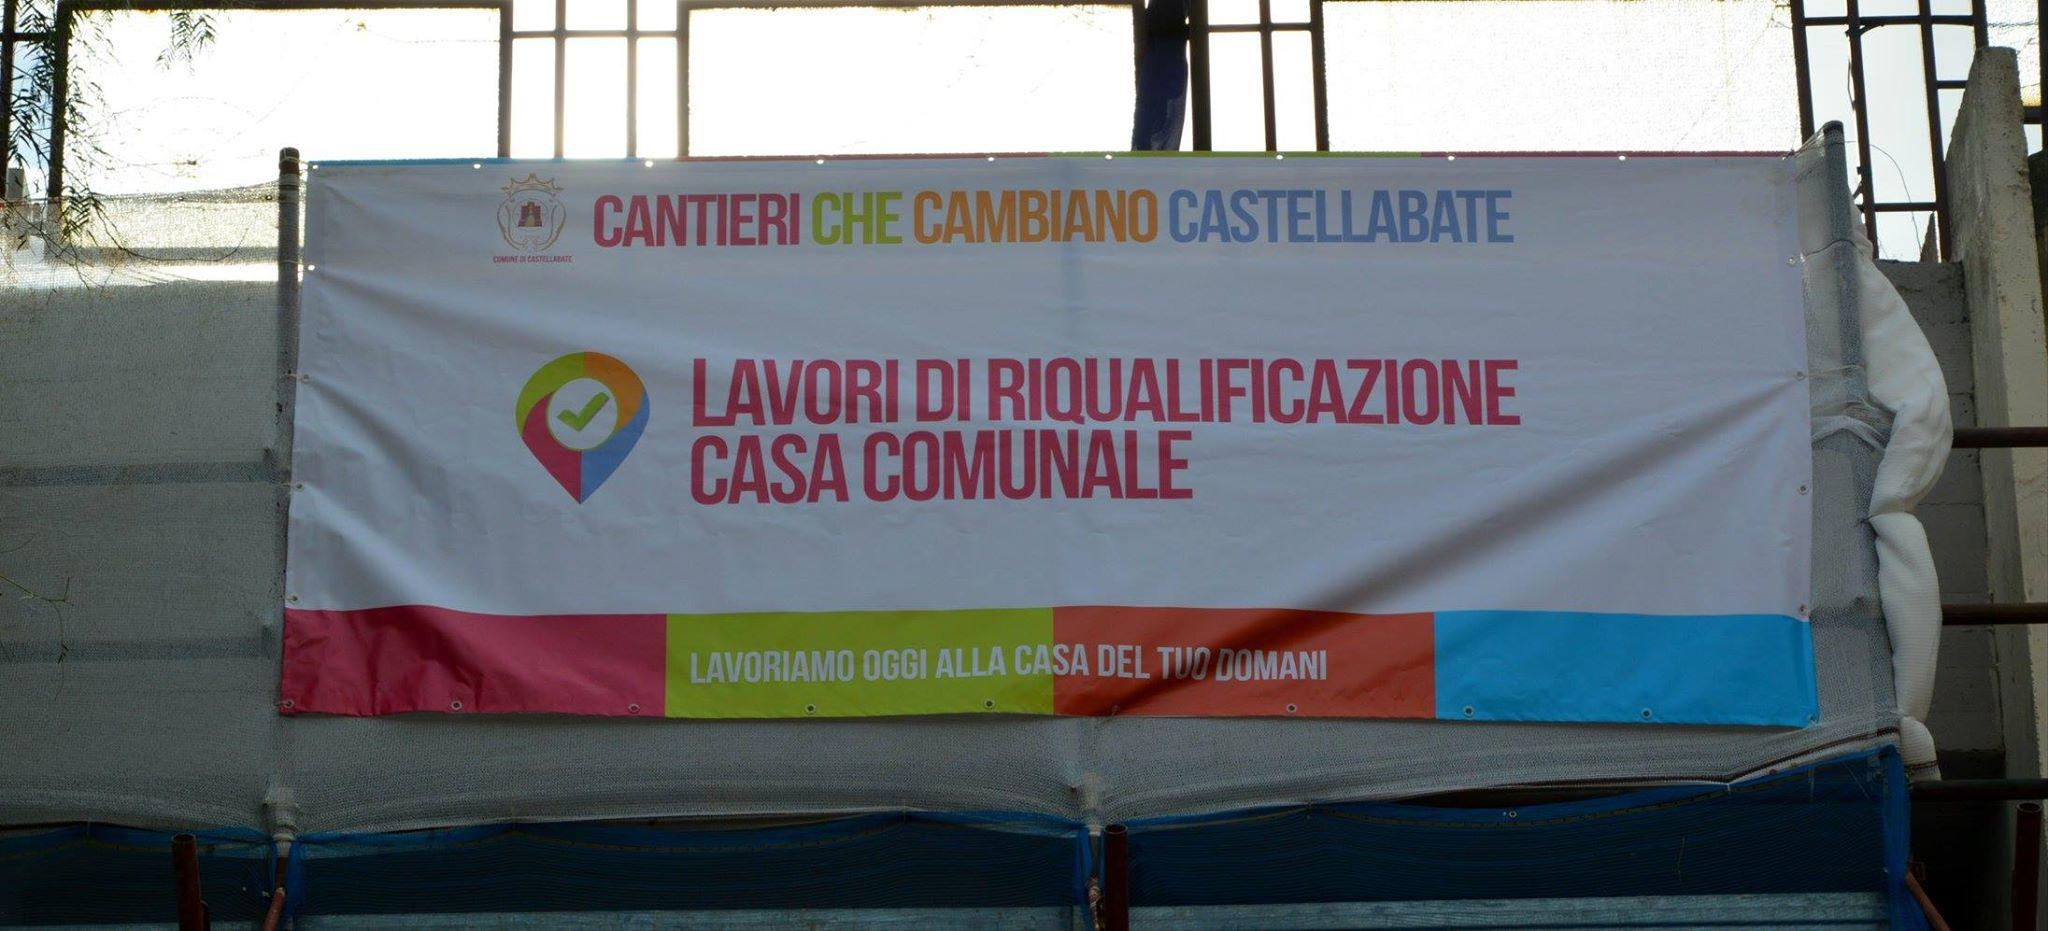 cartelli_castellabate_1